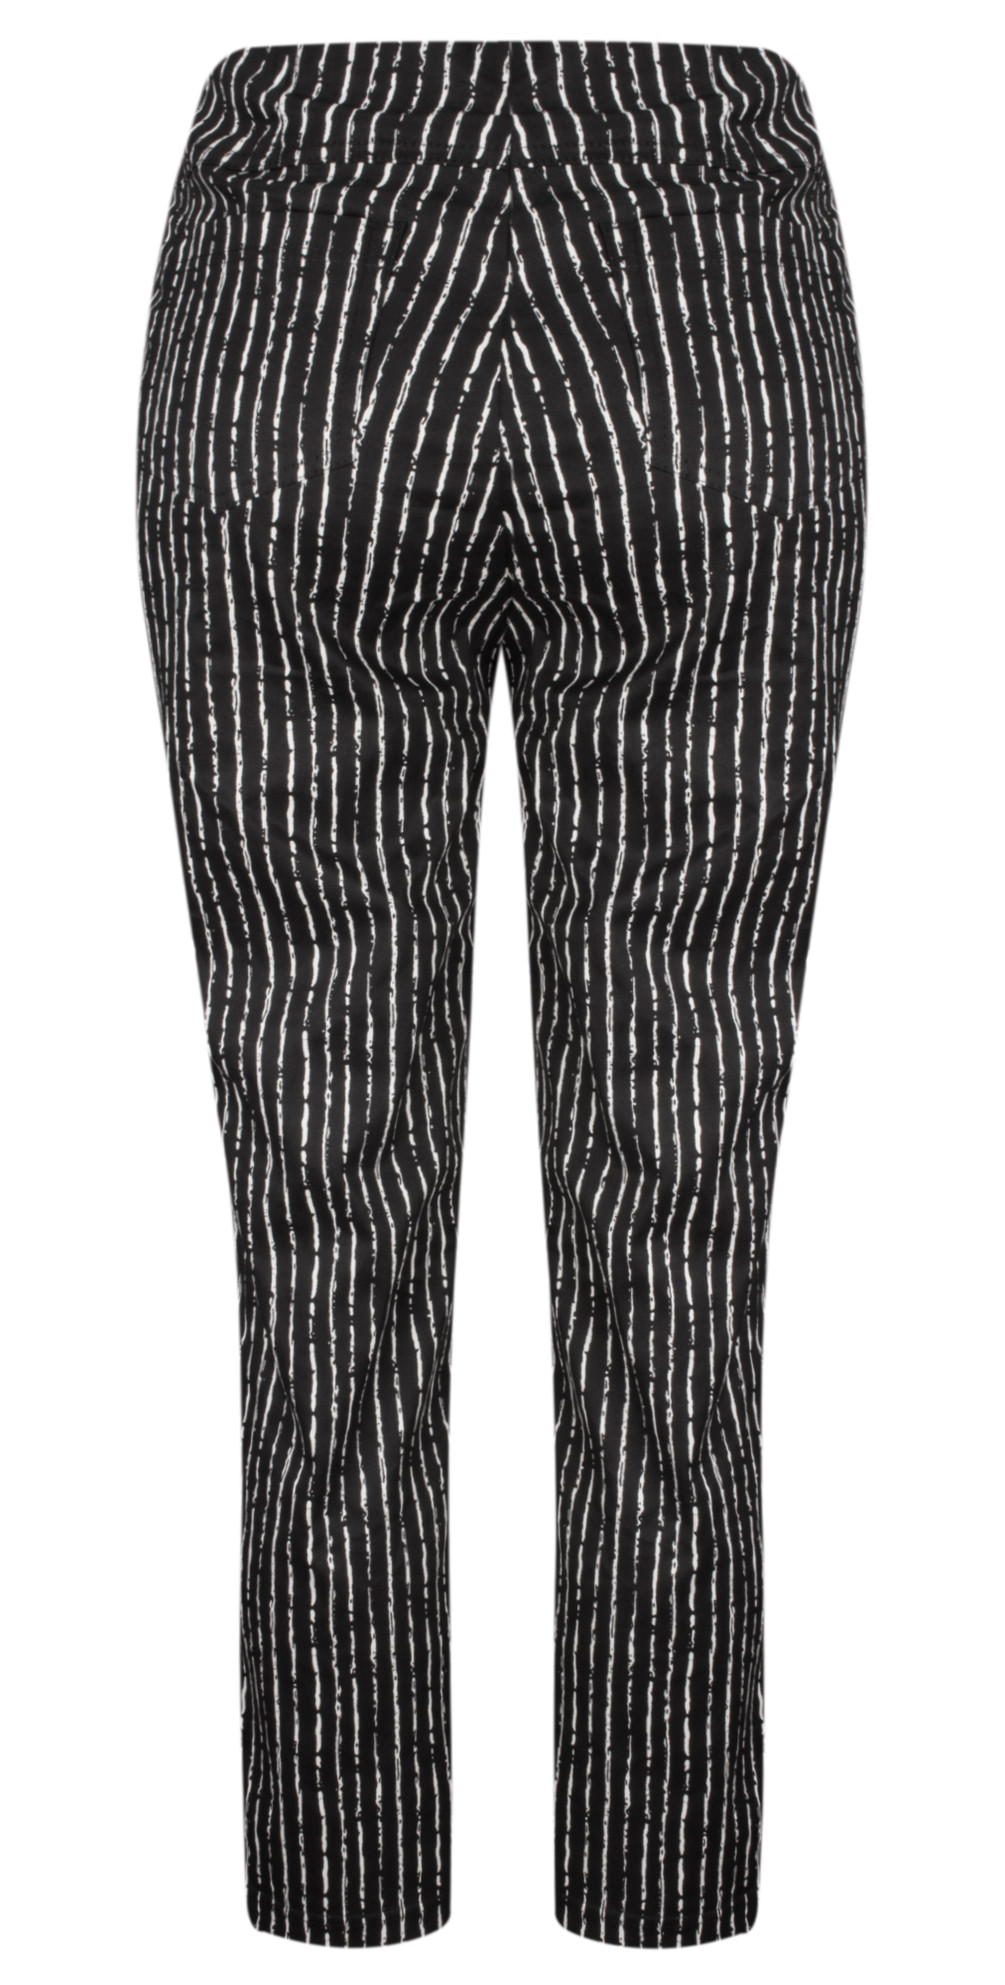 Bella 09 Paintstripe 7/8 Cropped Trouser main image